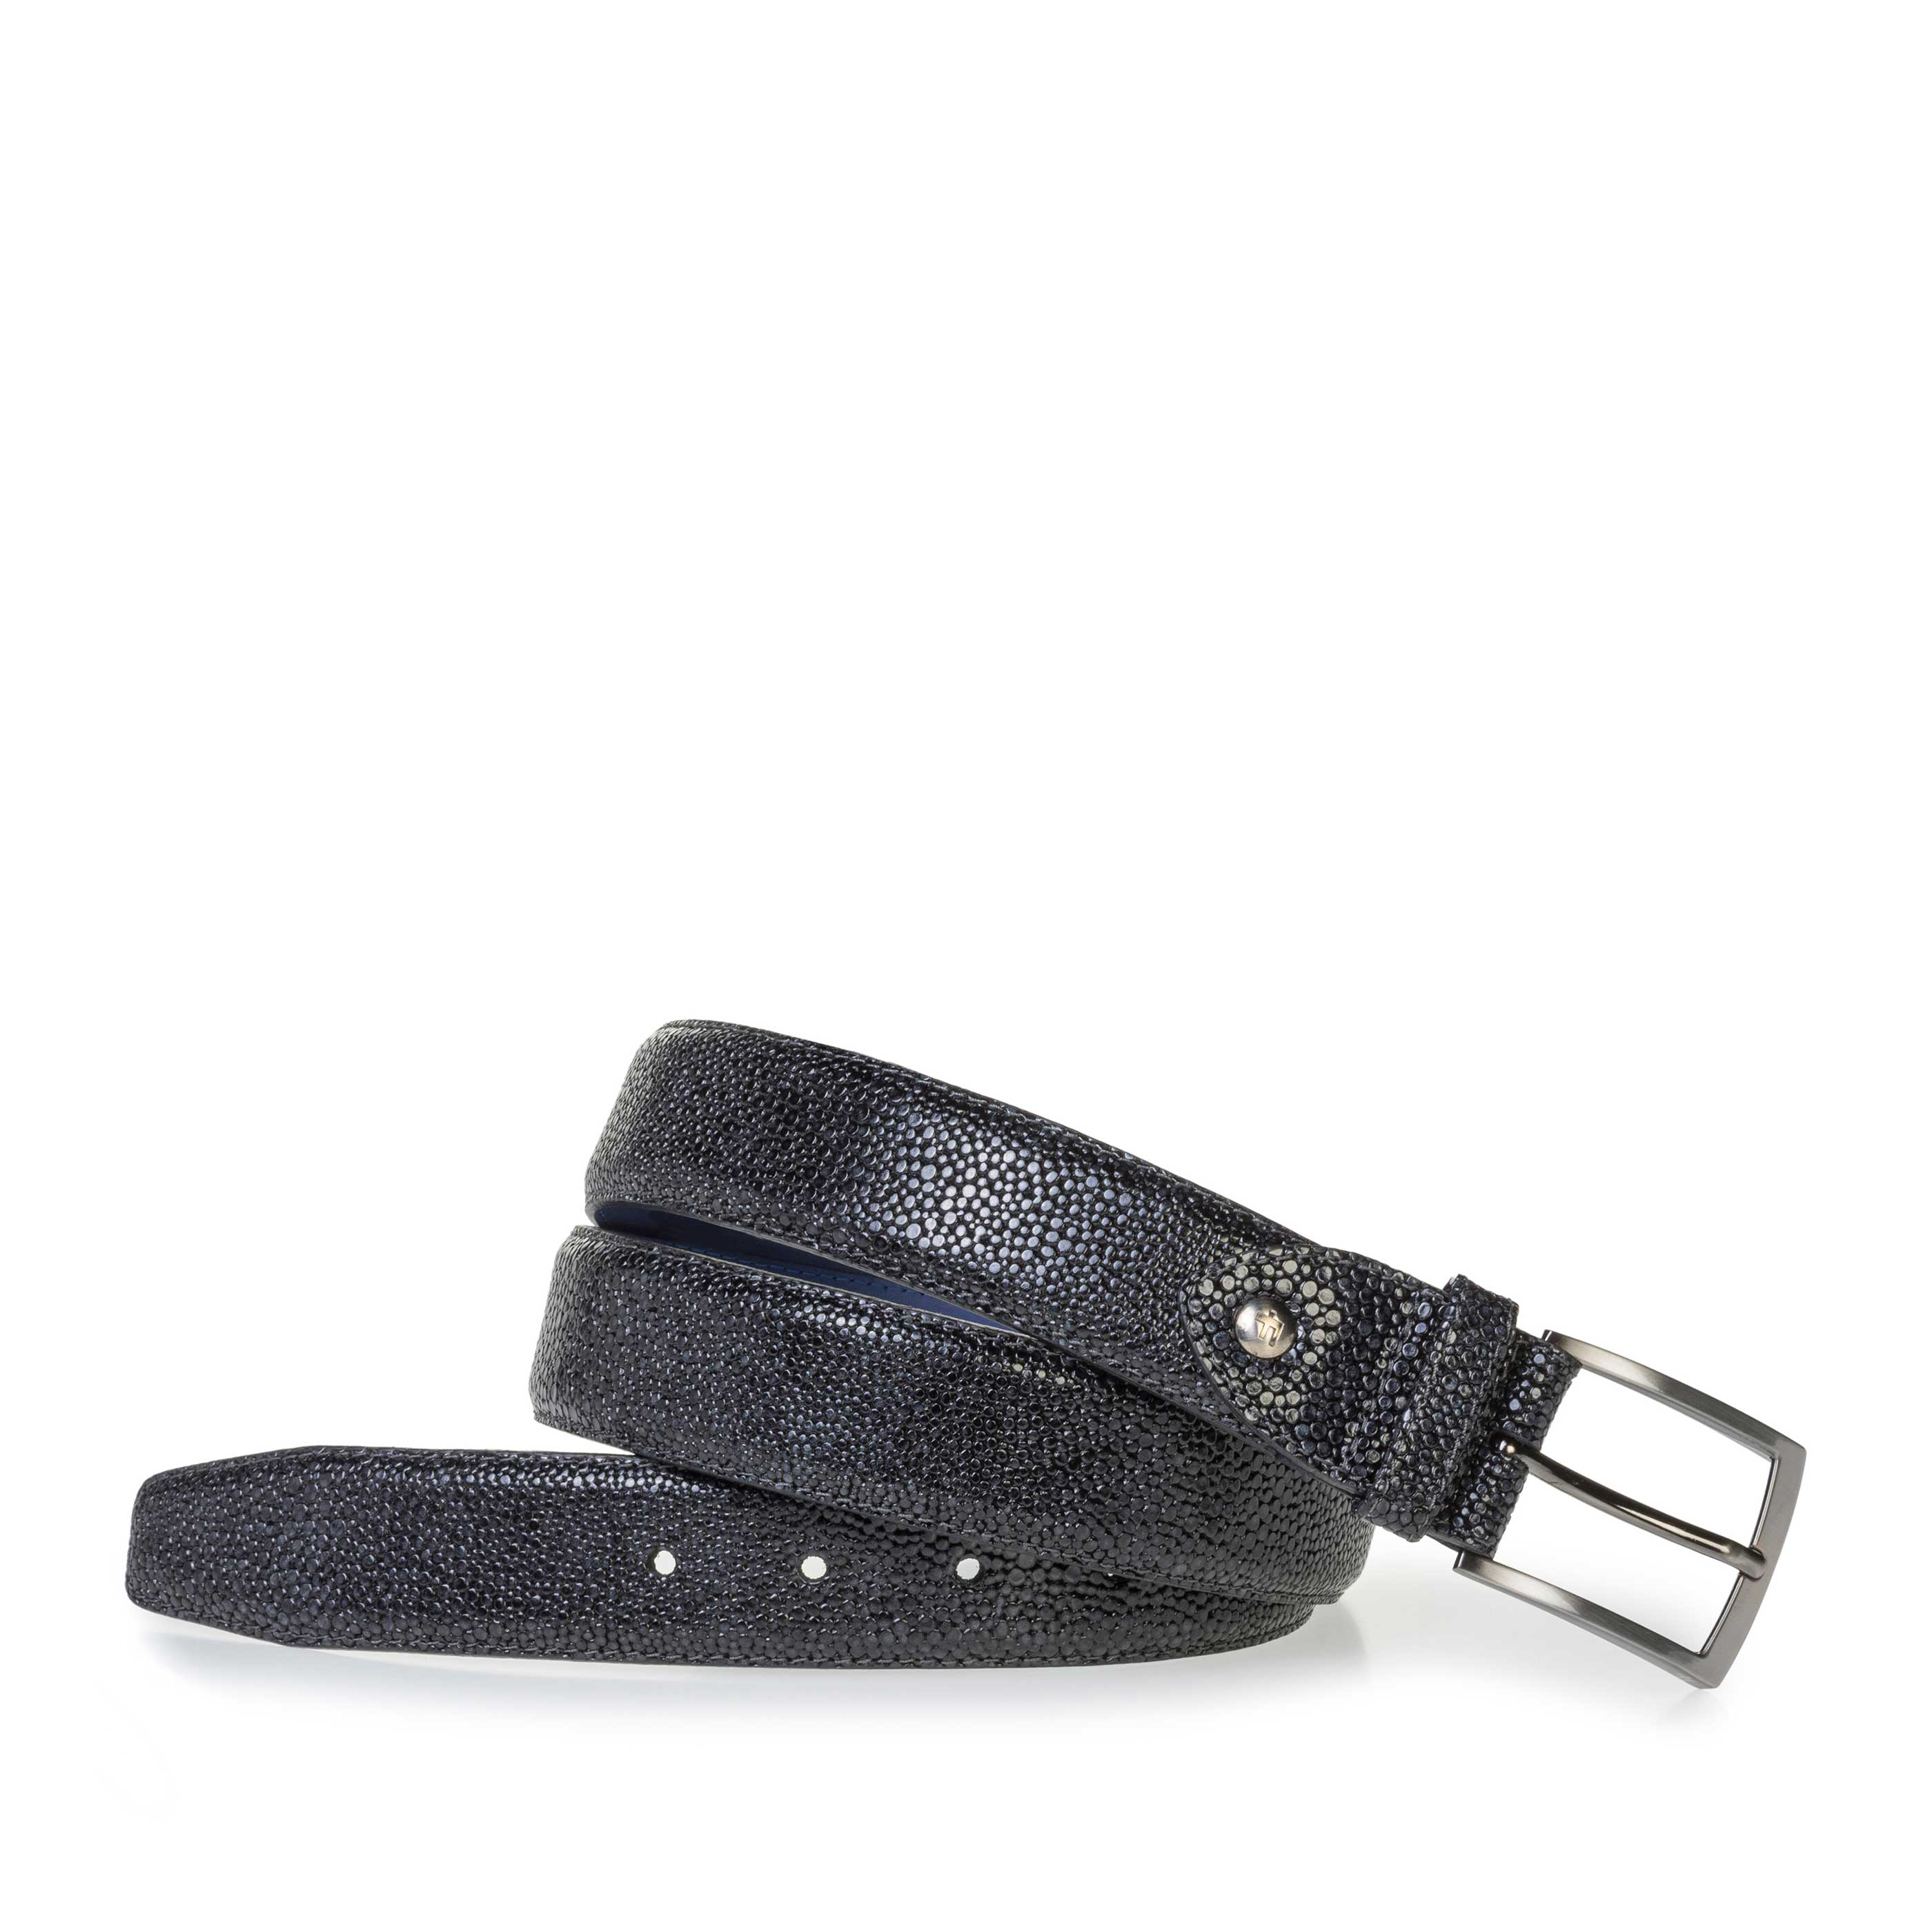 75200/91 - Blue leather belt with metallic print